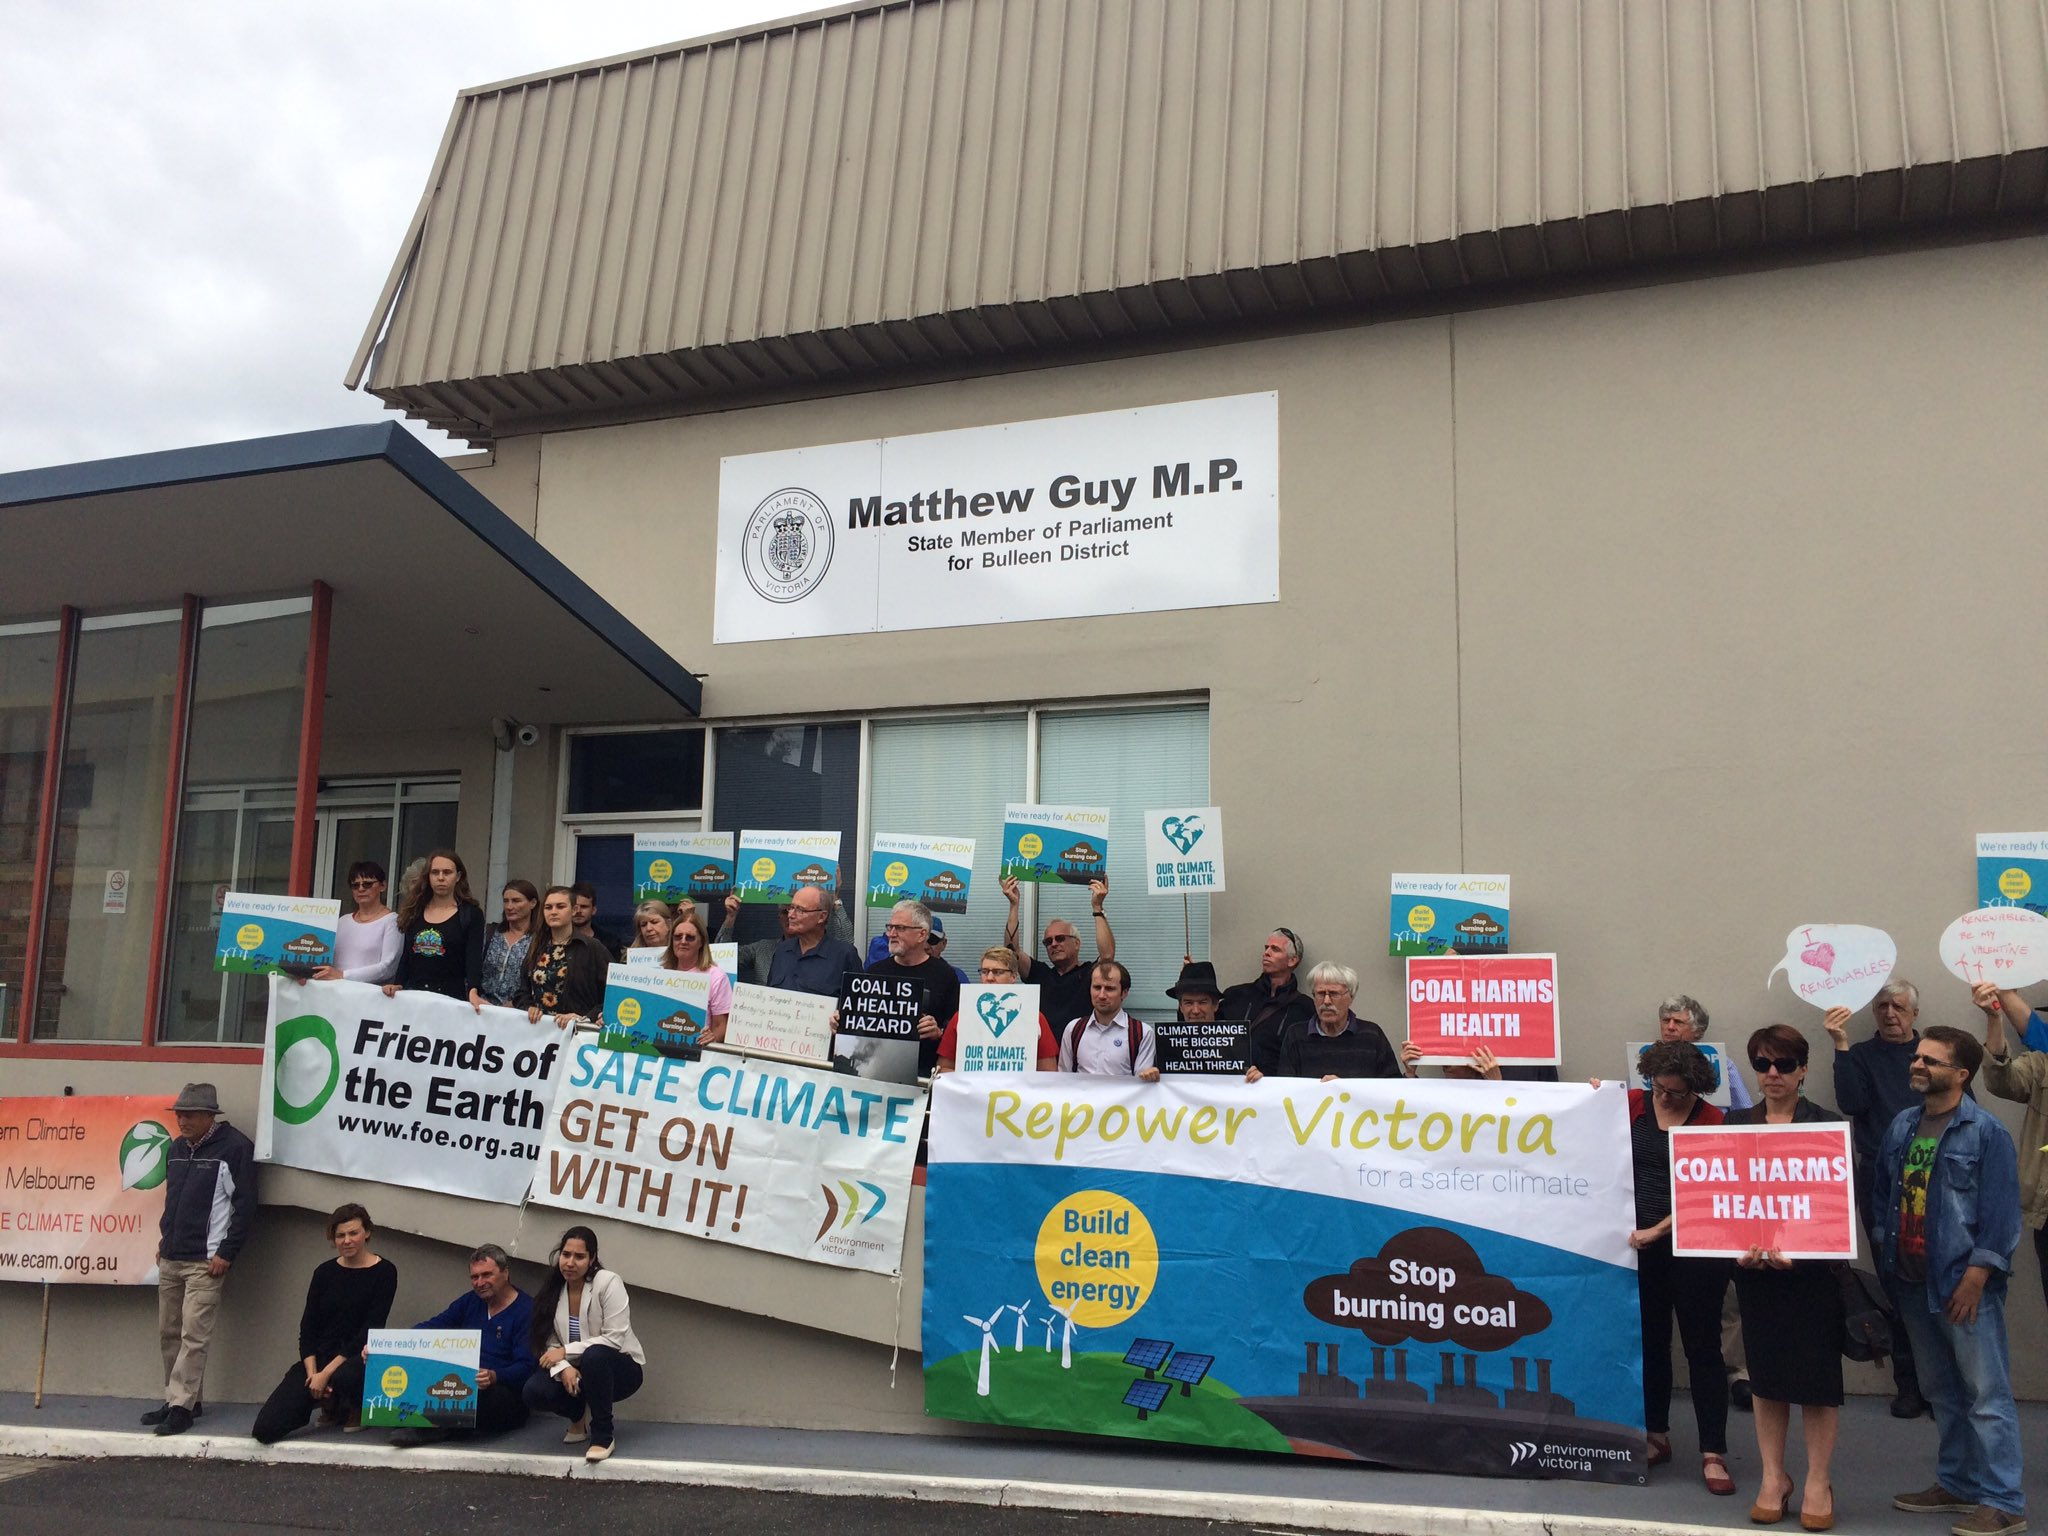 Bulleen community members gather at opposition leader Matthew Guy's office to stand up for Vic's Renewable Energy Target. #VRET #SpringSt https://t.co/o1CXAAHhs1